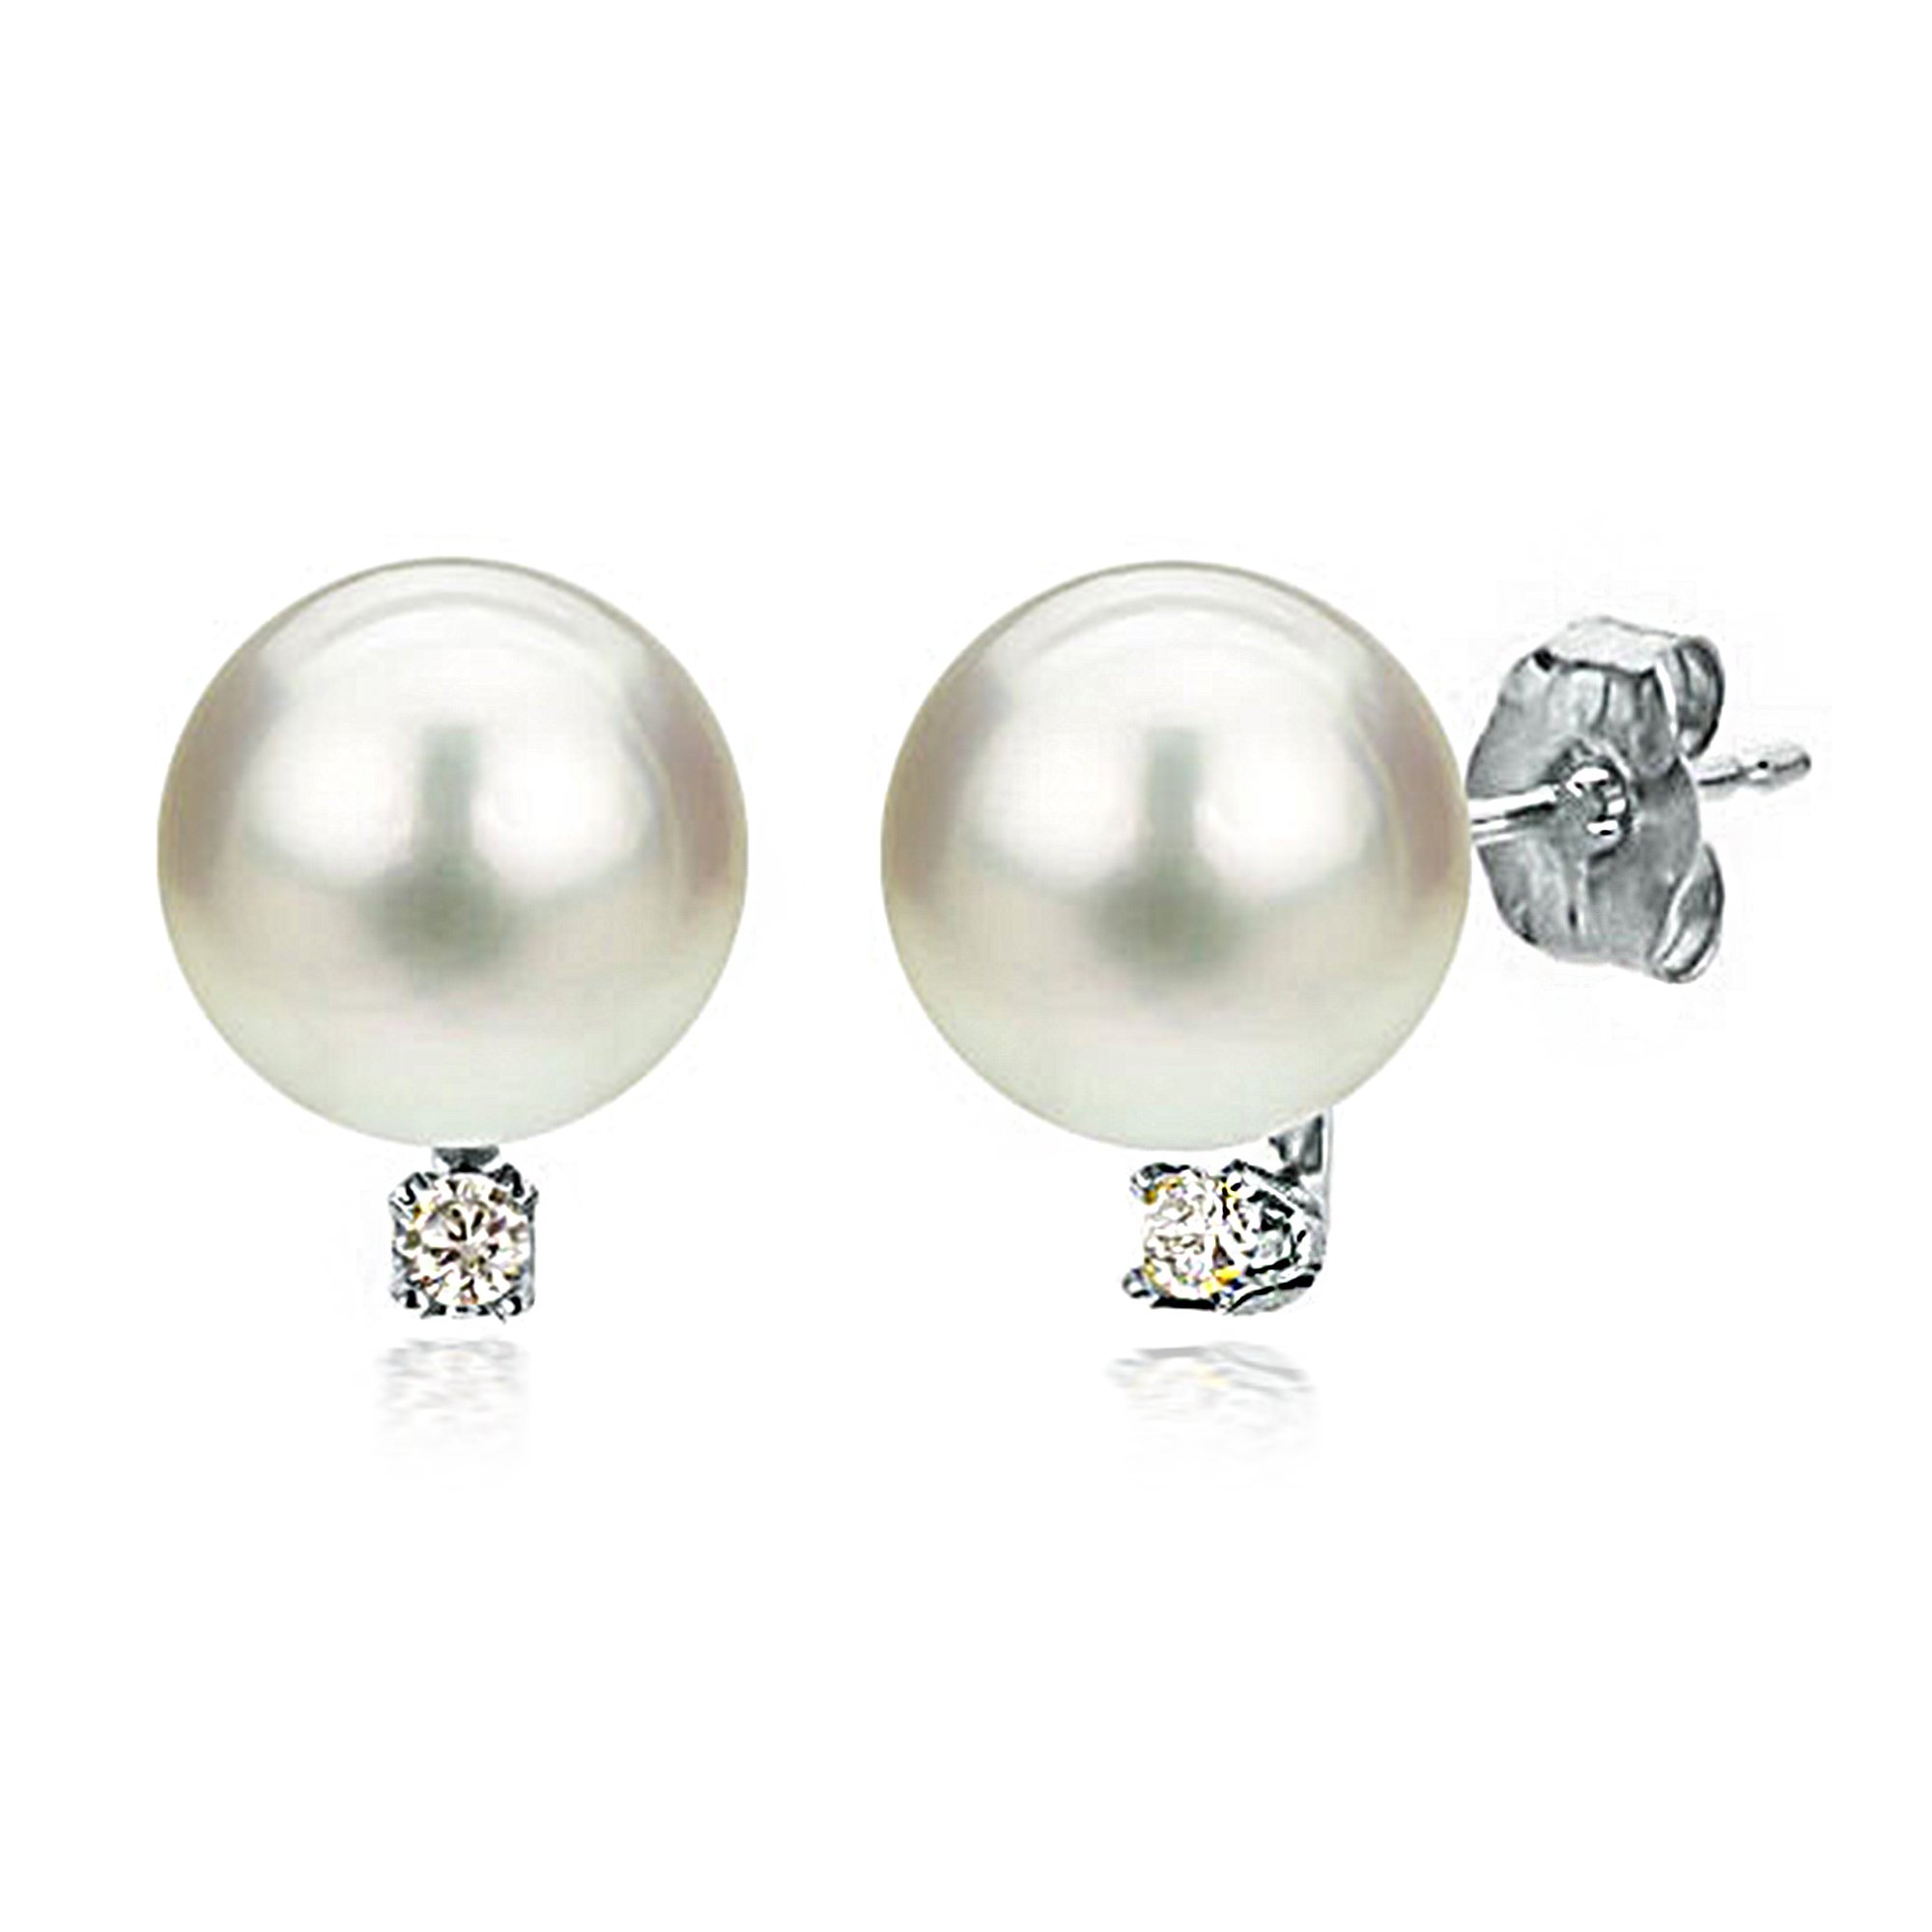 Freshwater Cultured White Pearl Diamond Earrings 14K White Gold Studs Birthday Gift 1/50 CTTW 7-7.5mm